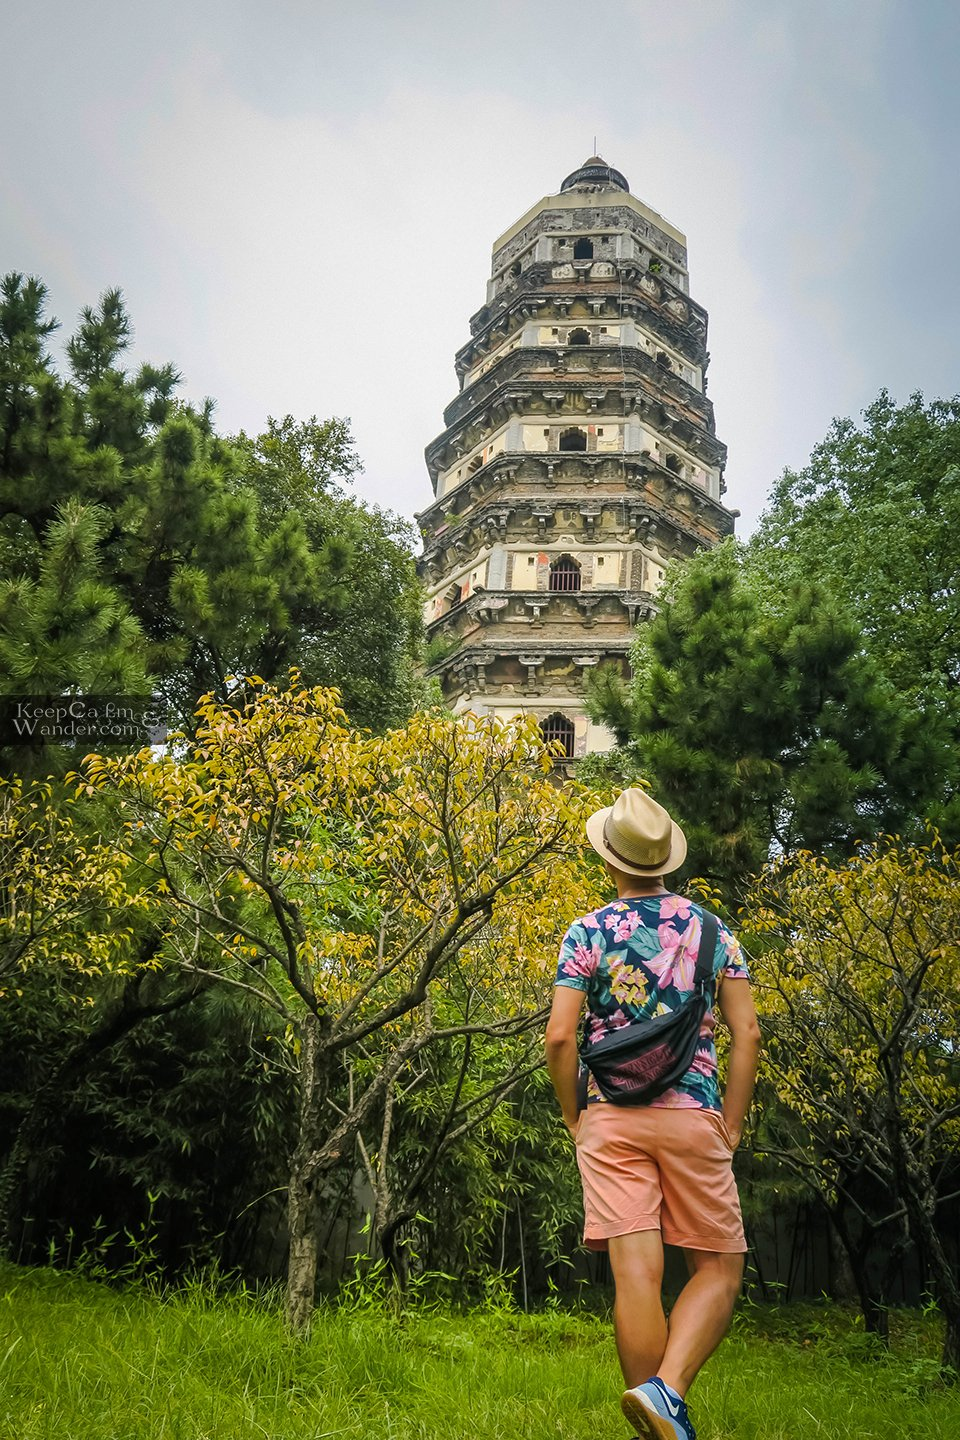 The Yunyansi Pagoda on Tiger Hill is China's Leaning Tower